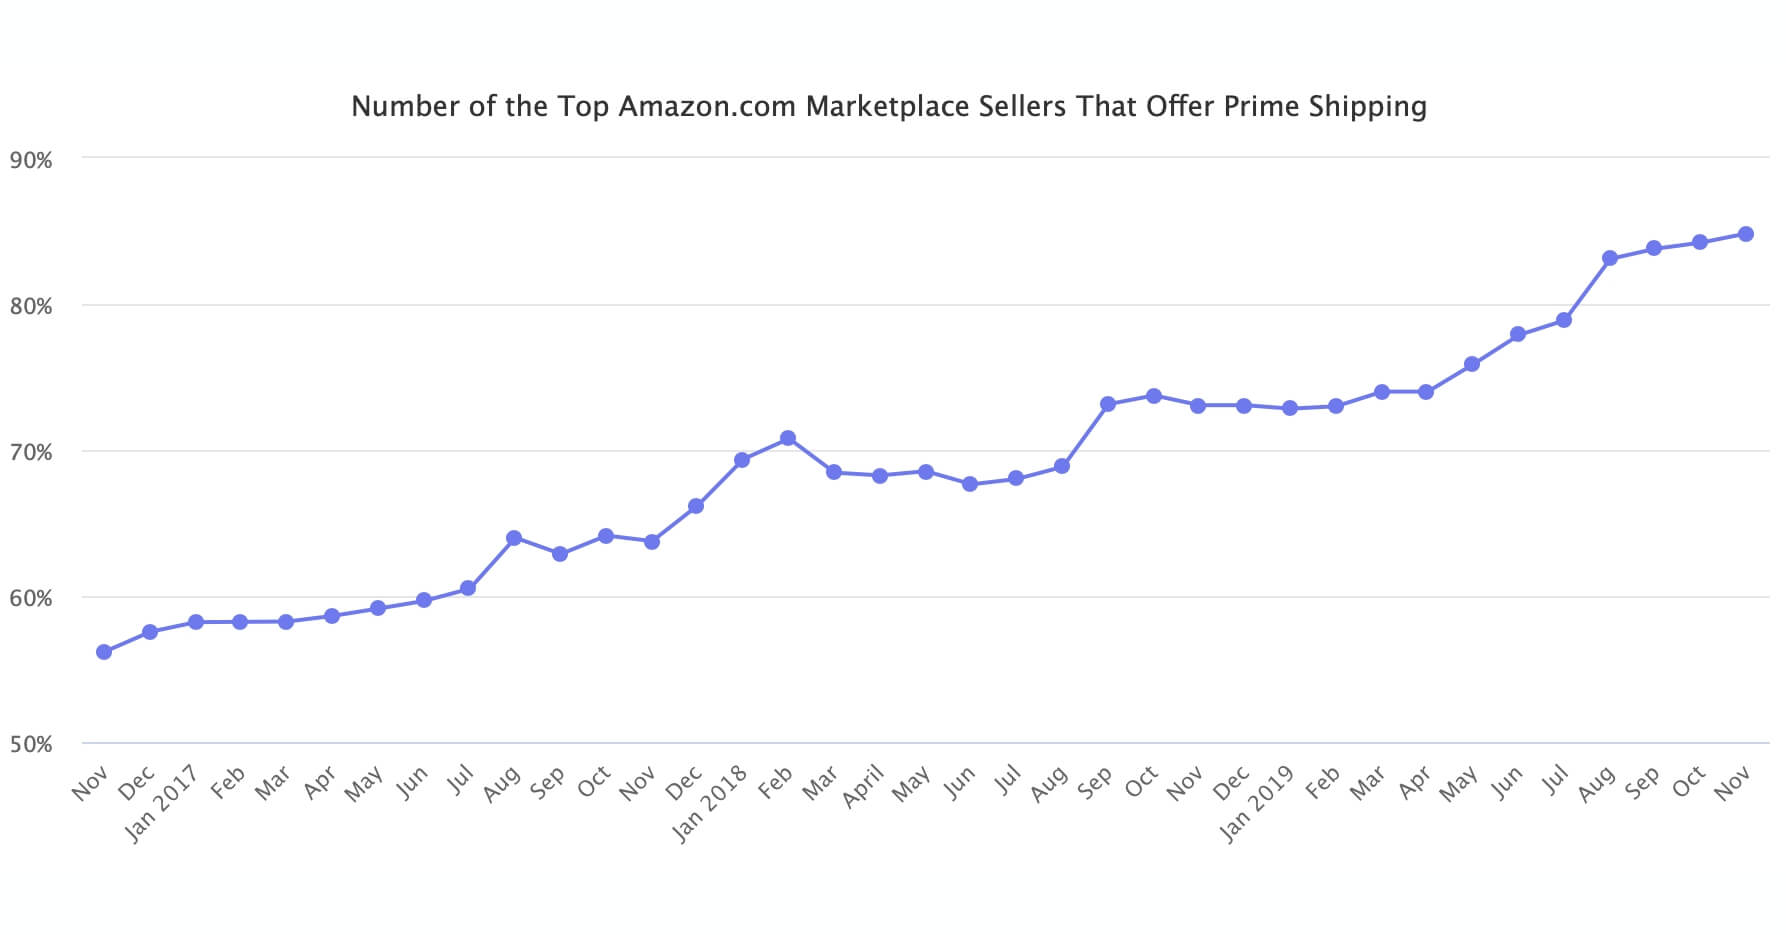 Number of Amazon Sellers Offering Prime Up 50% in Three Years